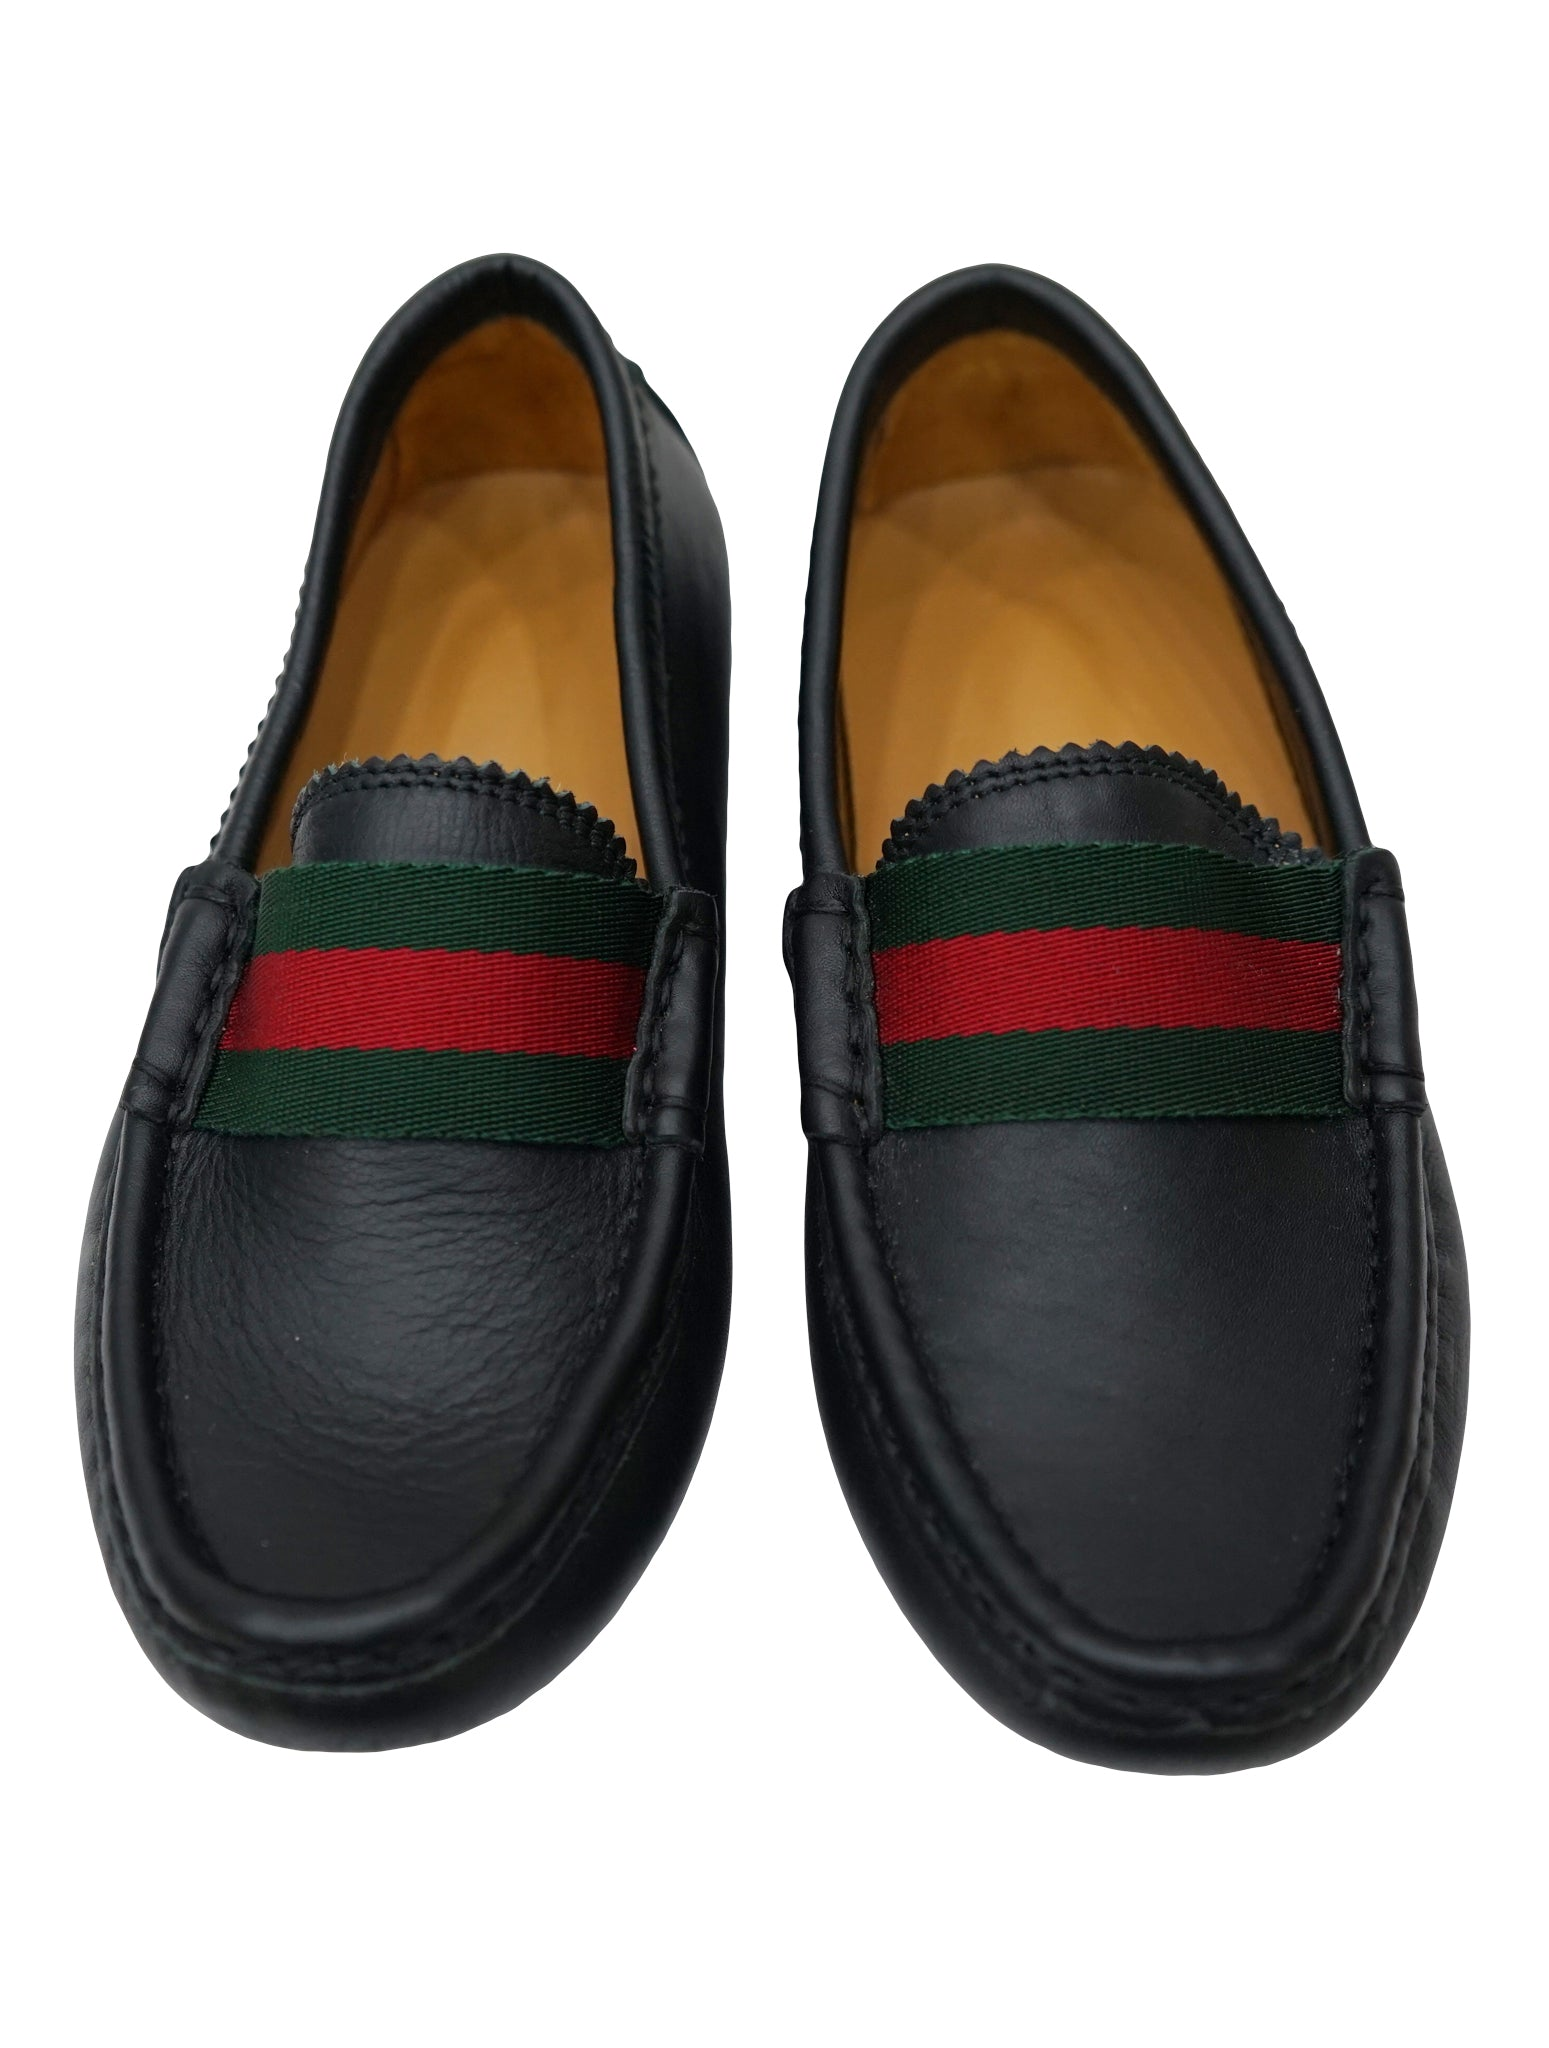 BLACK LEATHER WEB DETAIL LOAFERS SHOES